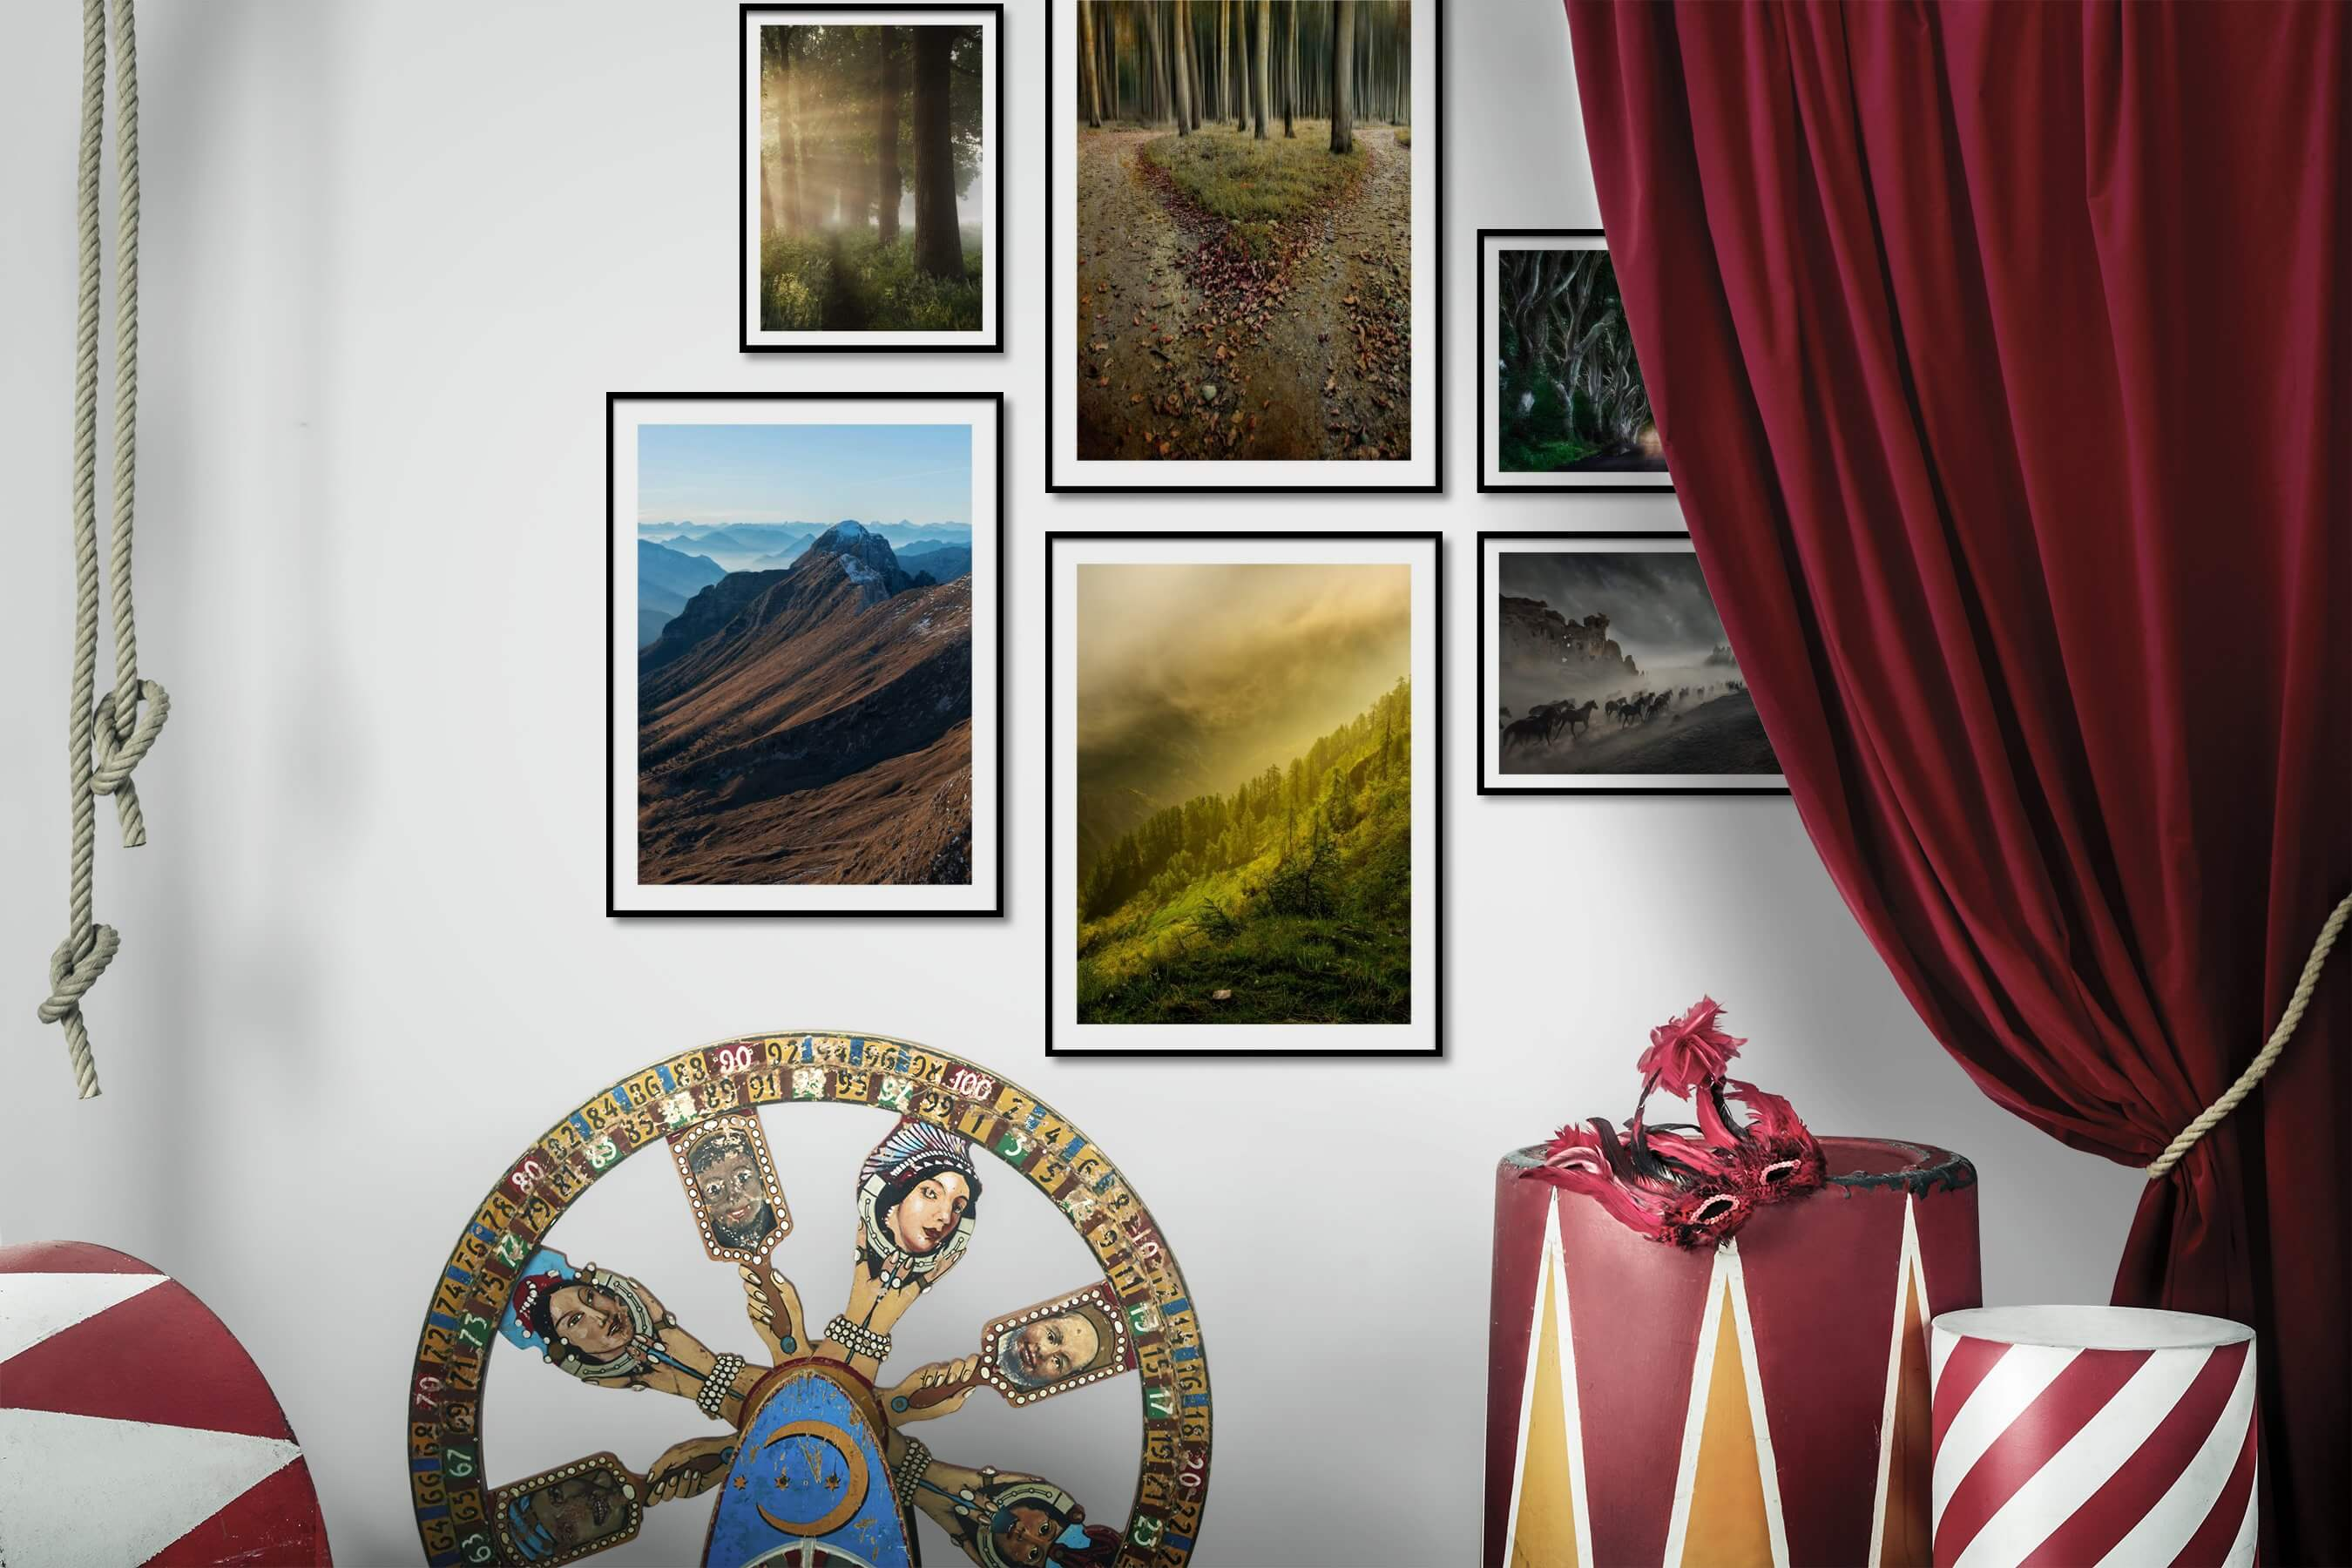 Gallery wall idea with six framed pictures arranged on a wall depicting Nature, Animals, and Country Life